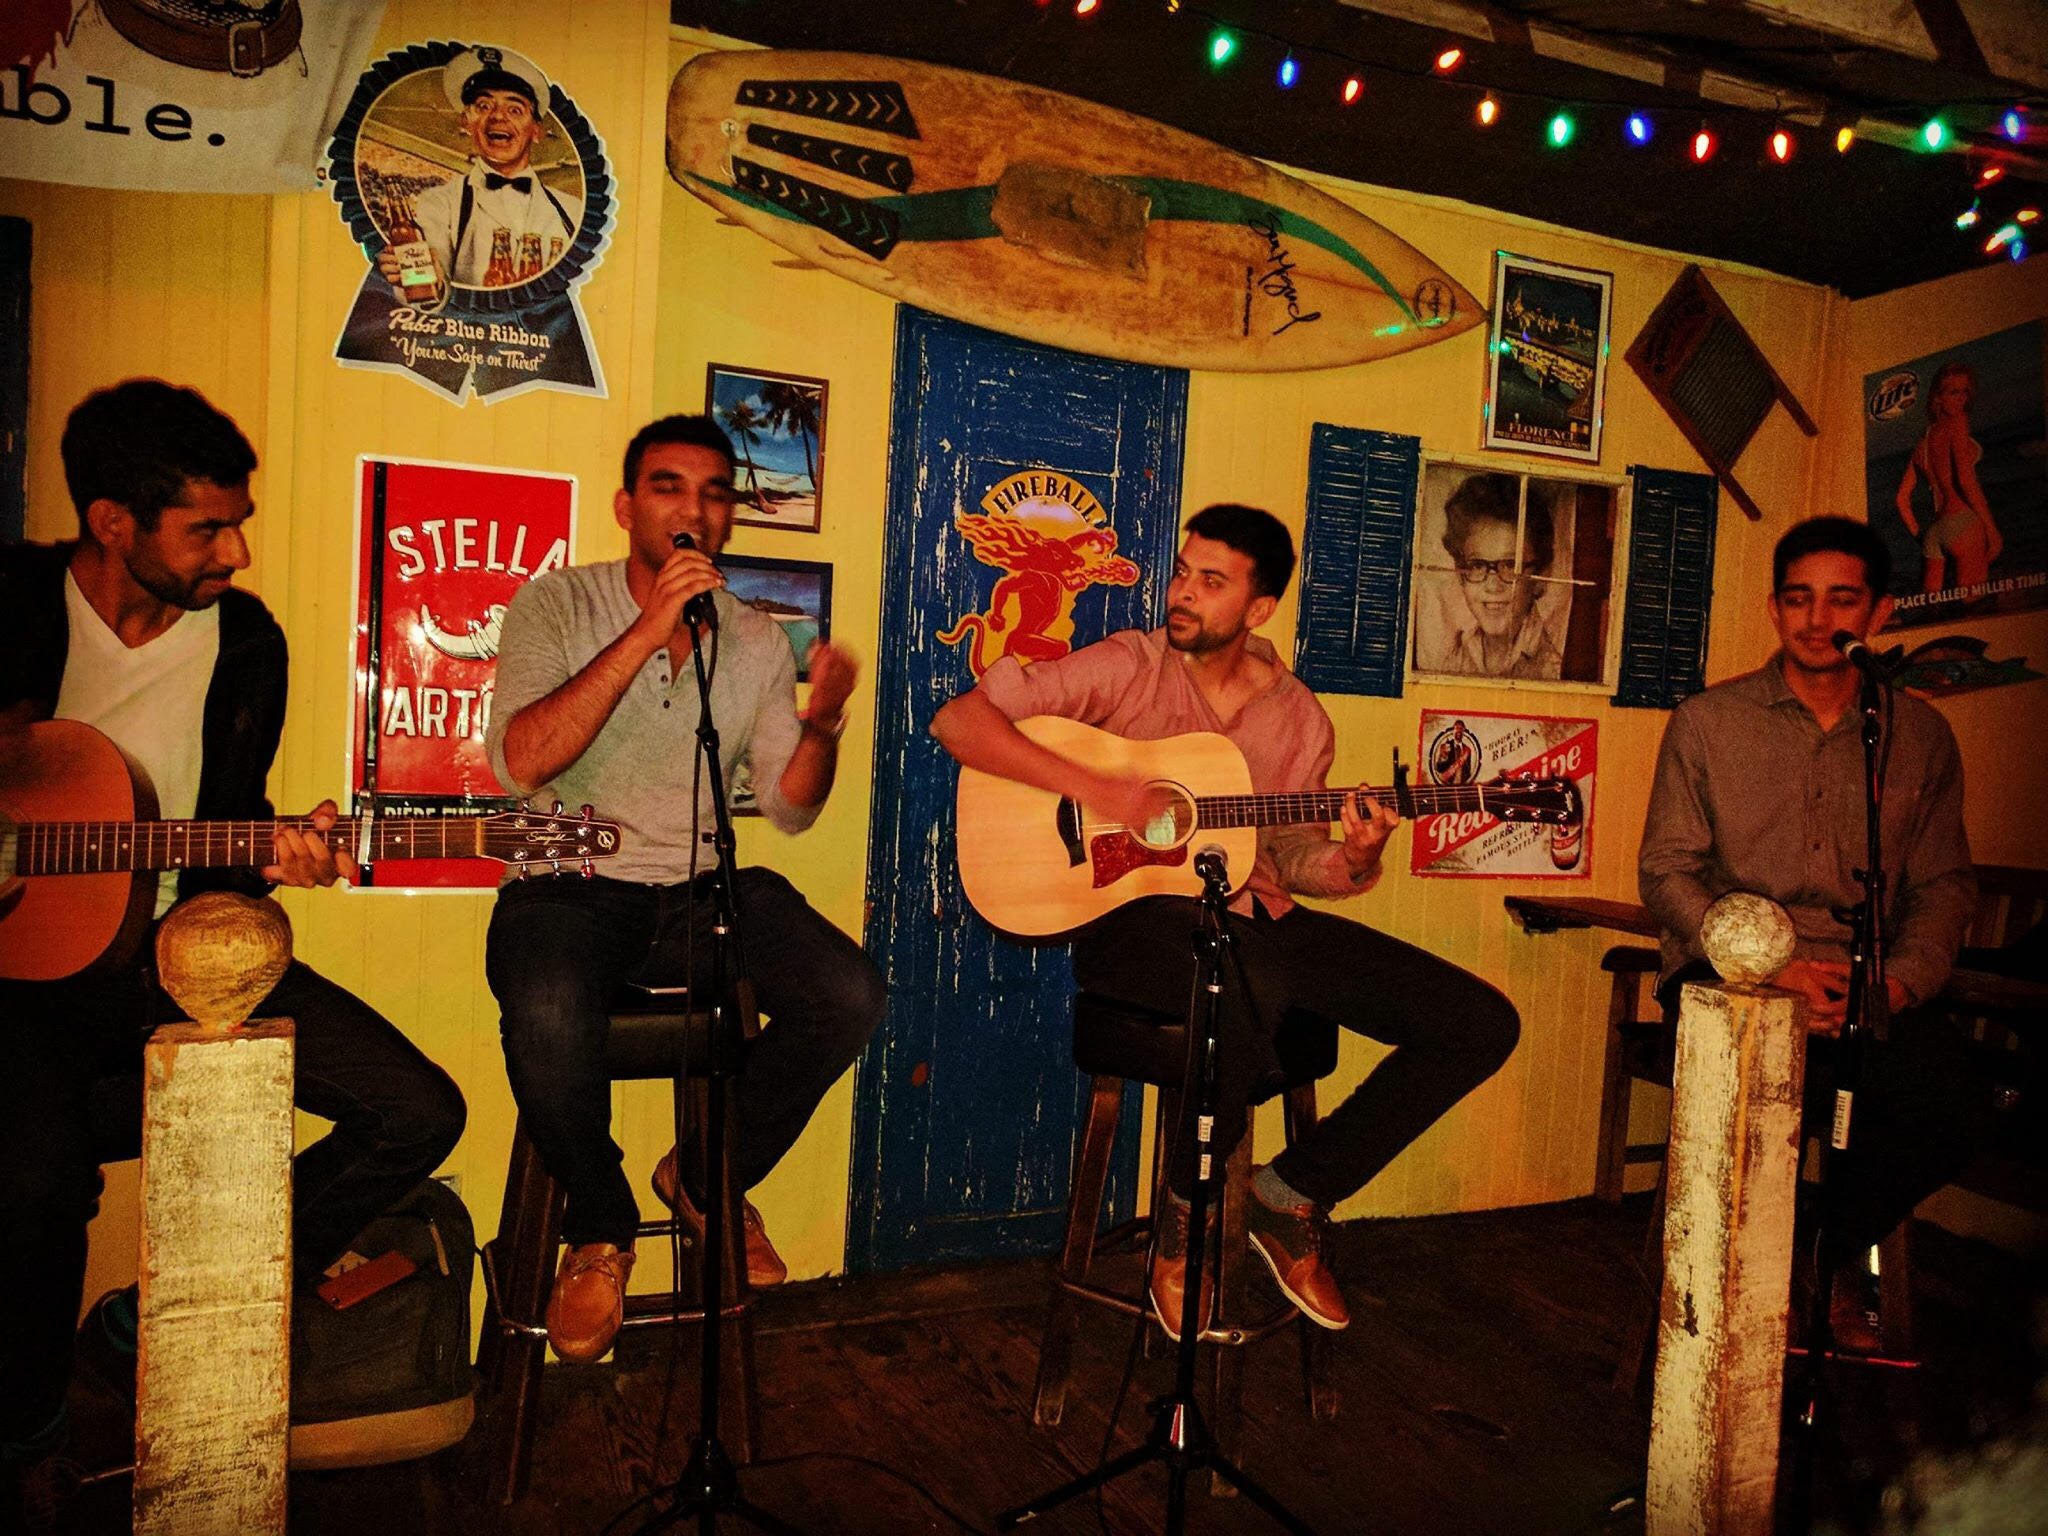 4 young men sitting on stools with one singing into a microphone and 2 holding guitars. There are street signs hanging on the back wall.